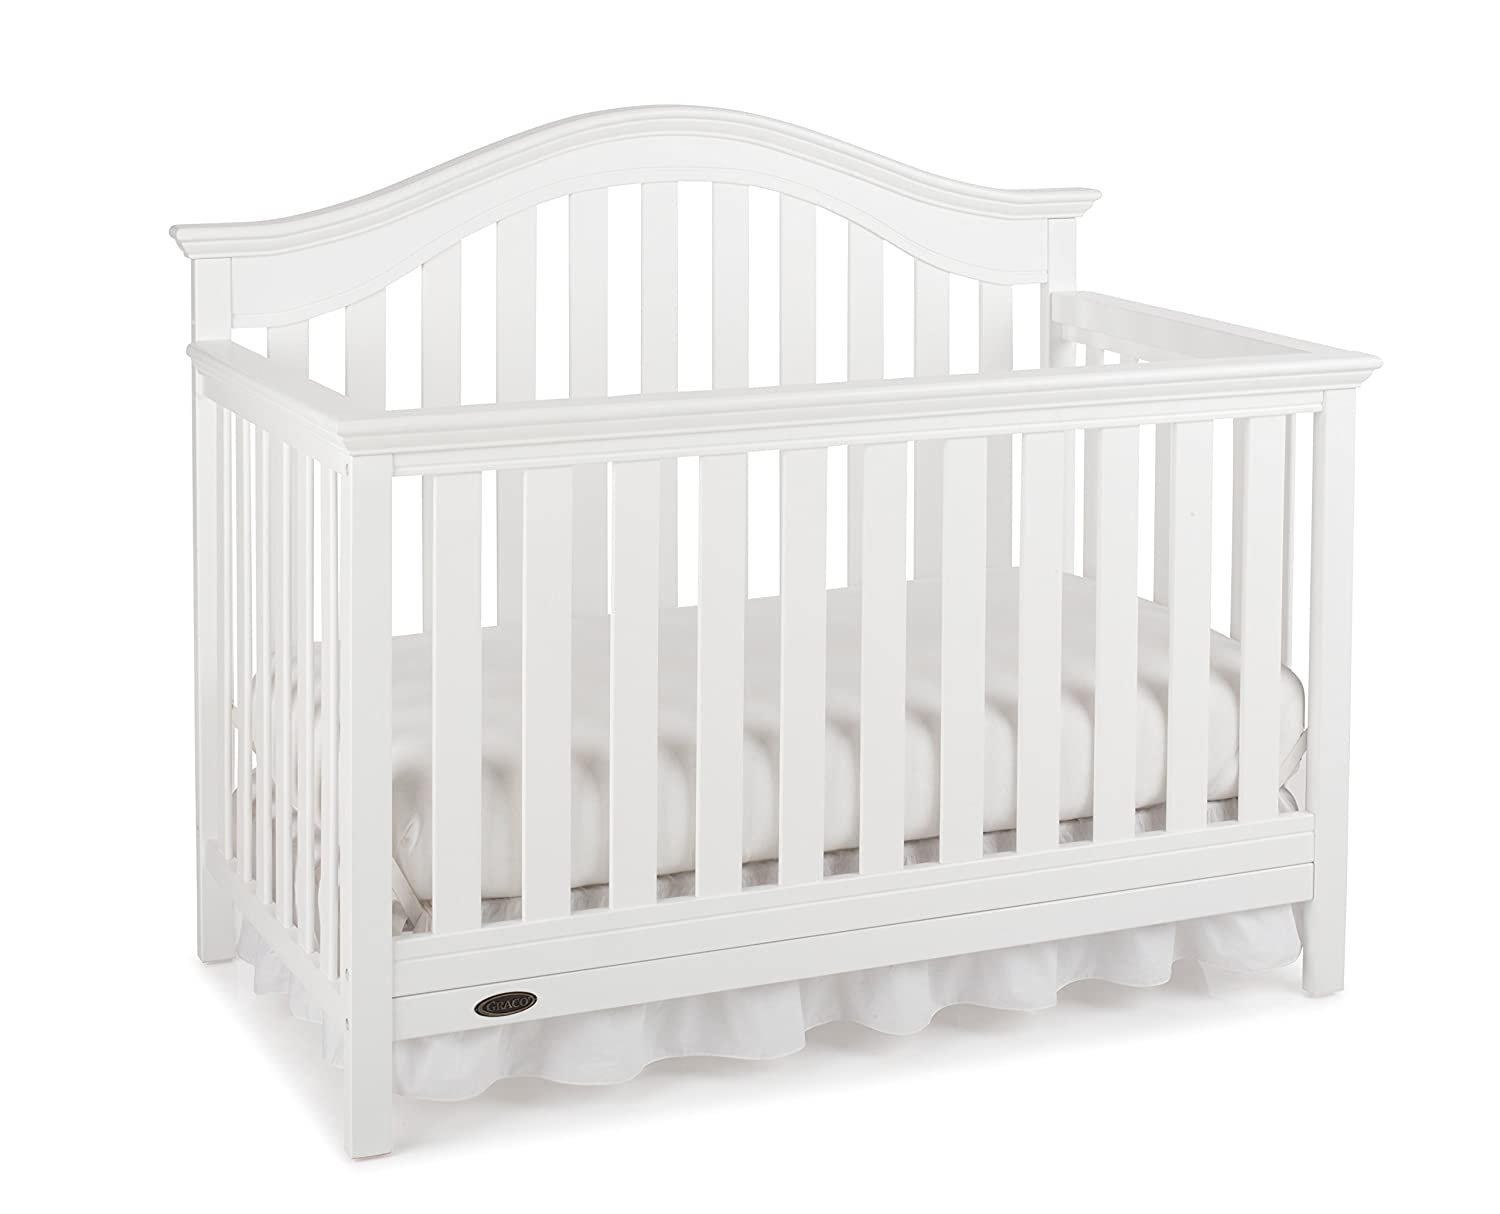 - Amazon.com : Graco Bryson 4-in-1 Convertible Crib, White : Baby